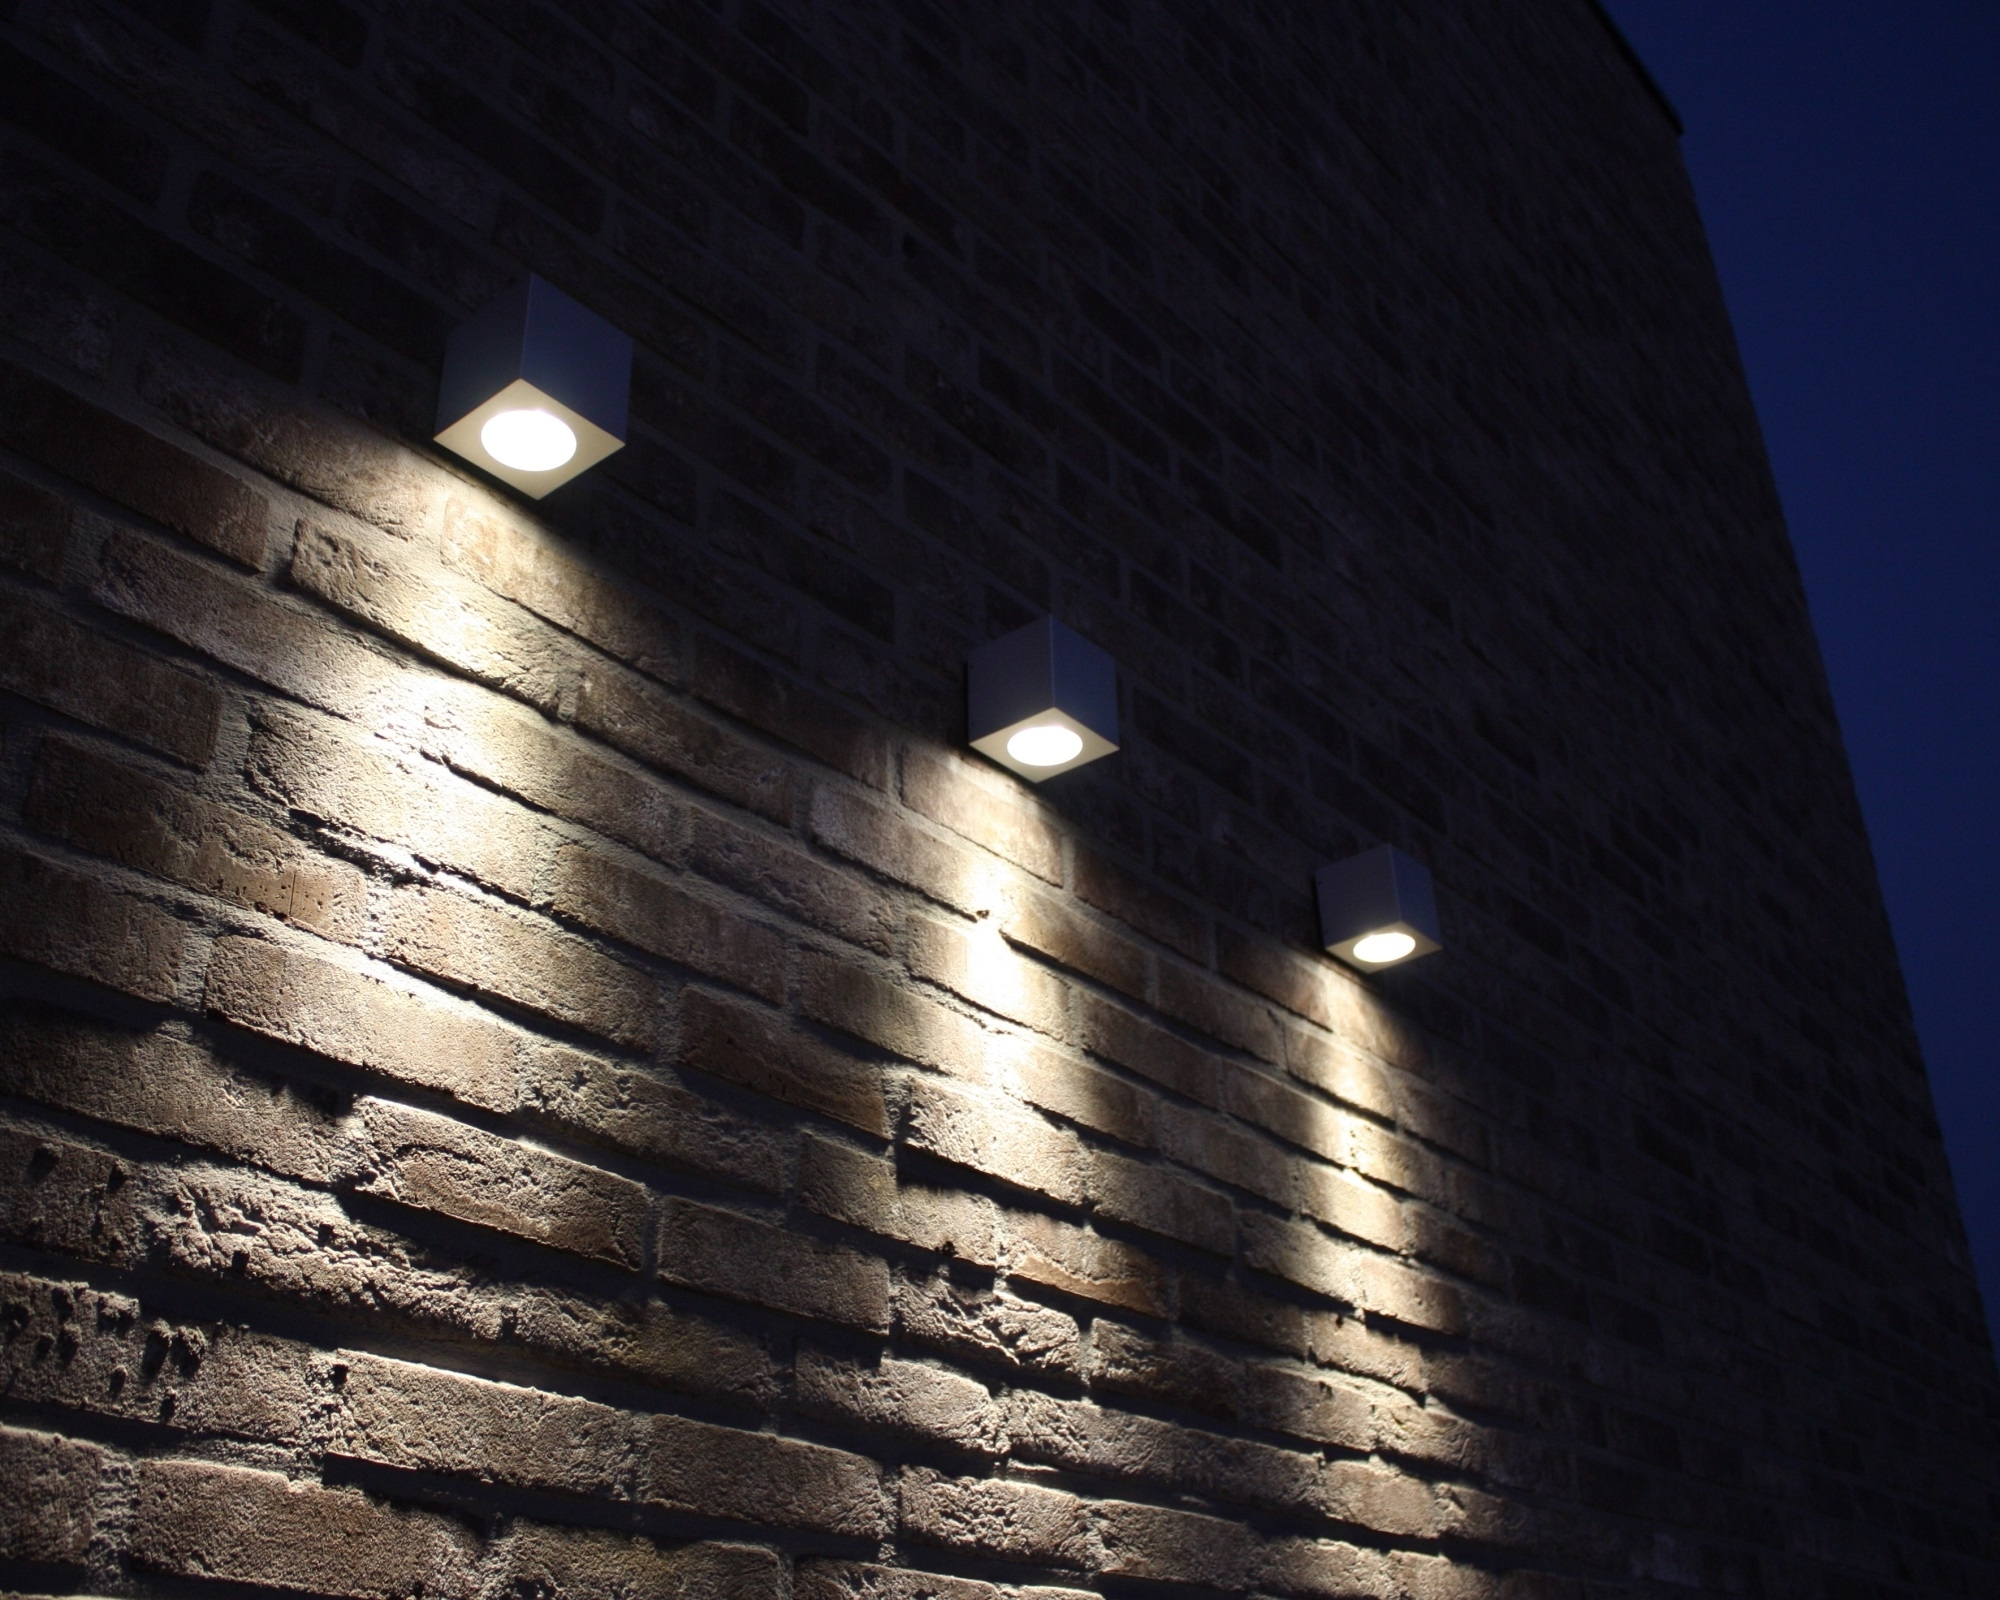 Black Outdoor Led Wall Lights Pertaining To Favorite Outdoor Wall Mounted Led Lighting For Red Exposed Brick Wall Ideas (View 7 of 20)